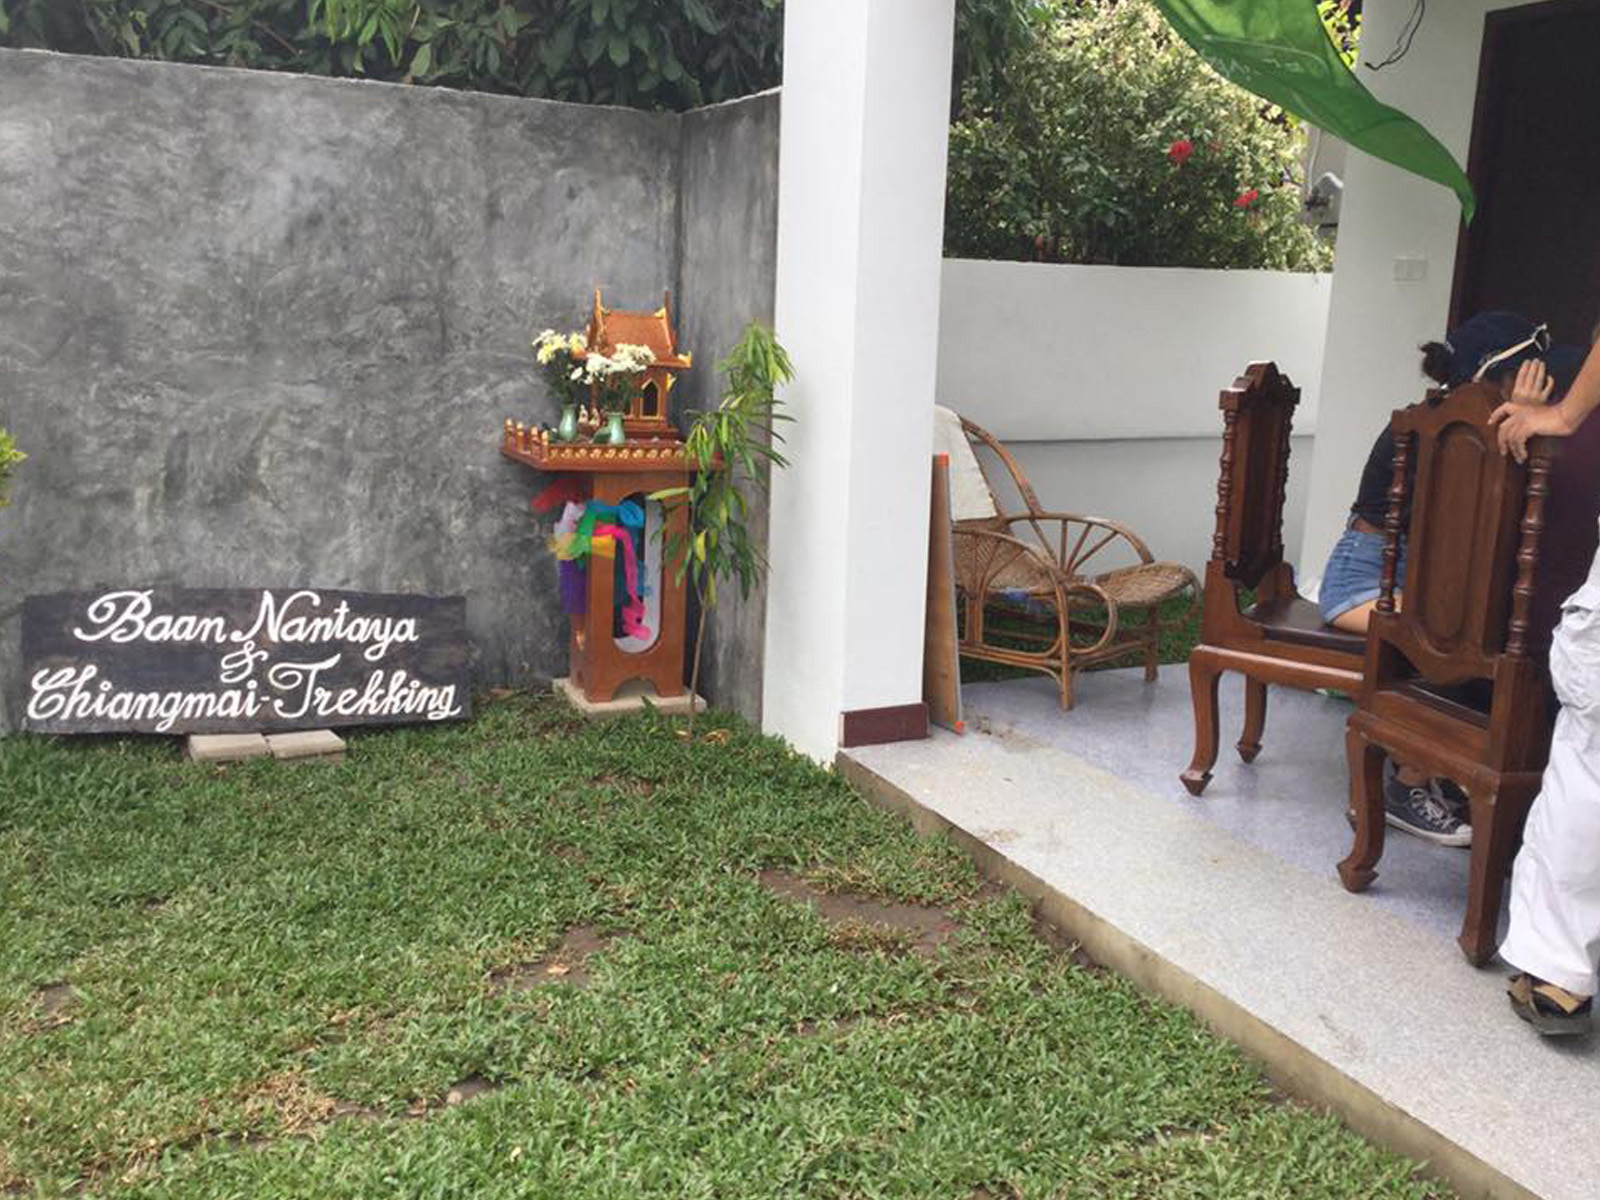 Guesthouse in the Old City of Chiang Mai | Chiang Mai Trekking | Das beste Trekking in Chiang Mai mit Piroon Nantaya